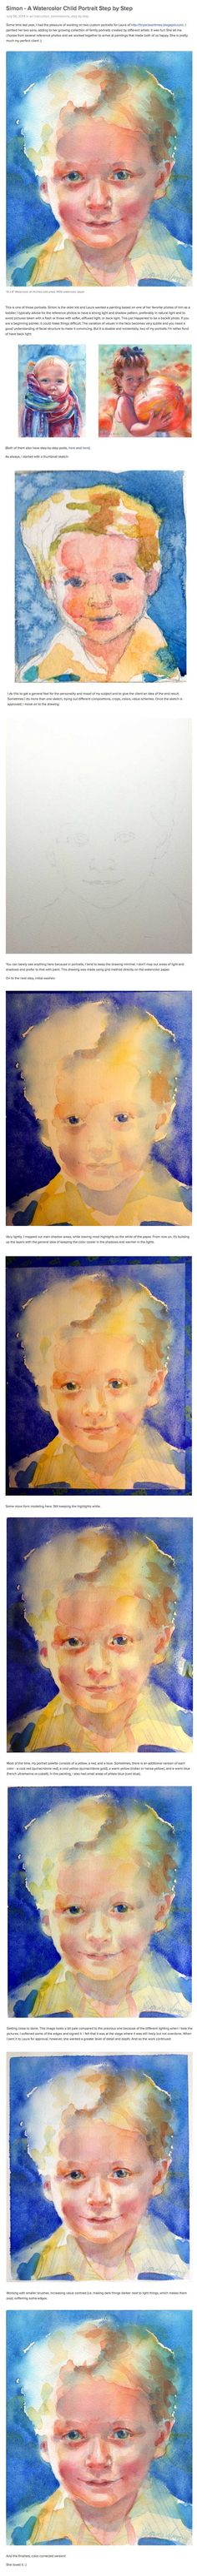 Watercolor Child Portrait Tutorial Step by Step. Artist Yevgenia Watts